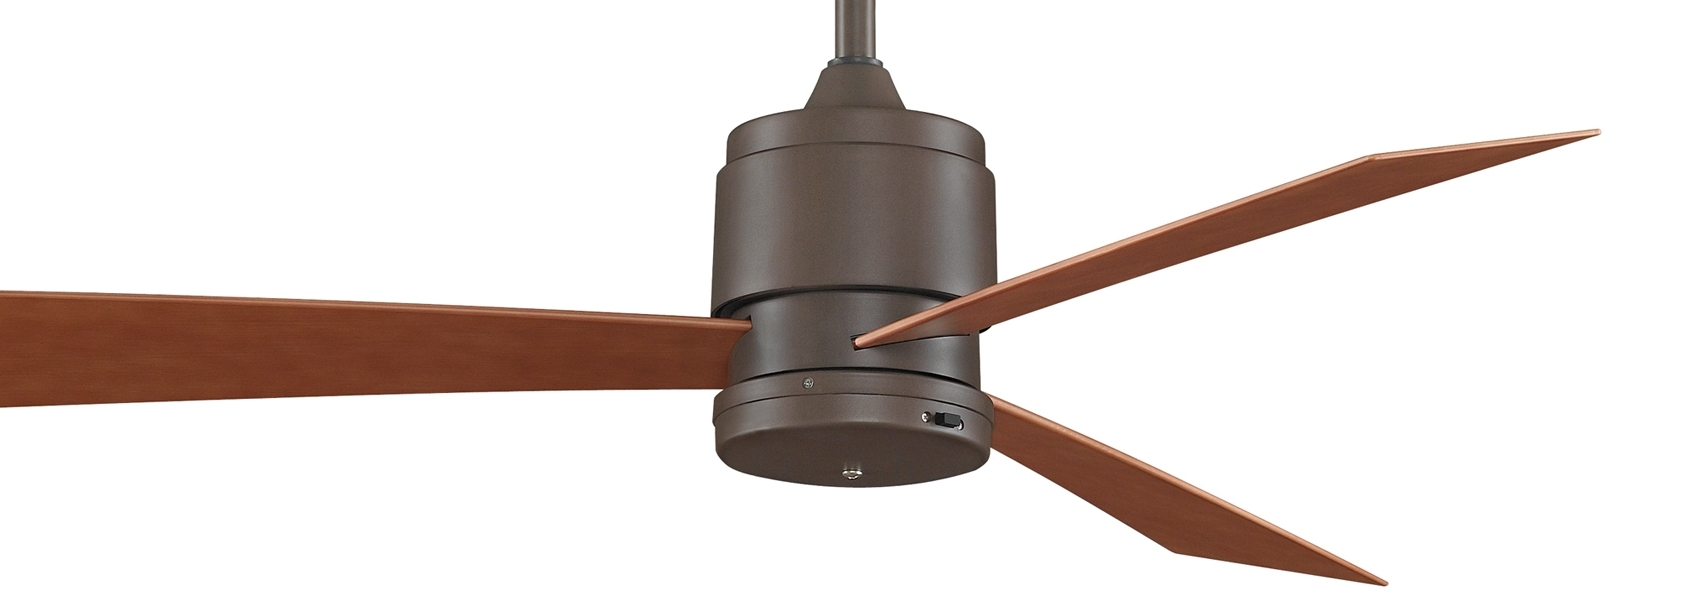 Gold Coast Outdoor Ceiling Fans Regarding Trendy Gold Coast Ceiling Fans (Gallery 6 of 20)